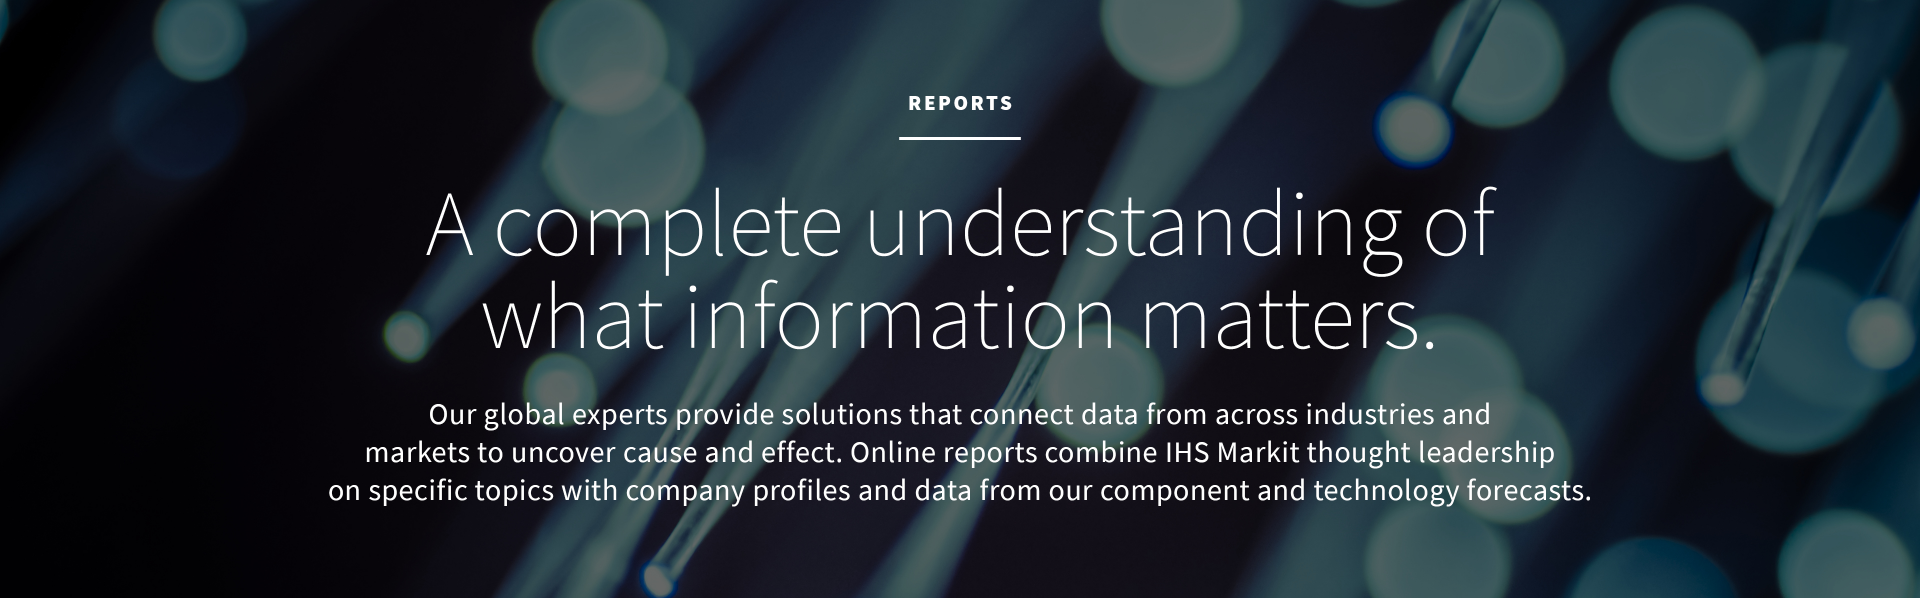 Reports Supplierinsight